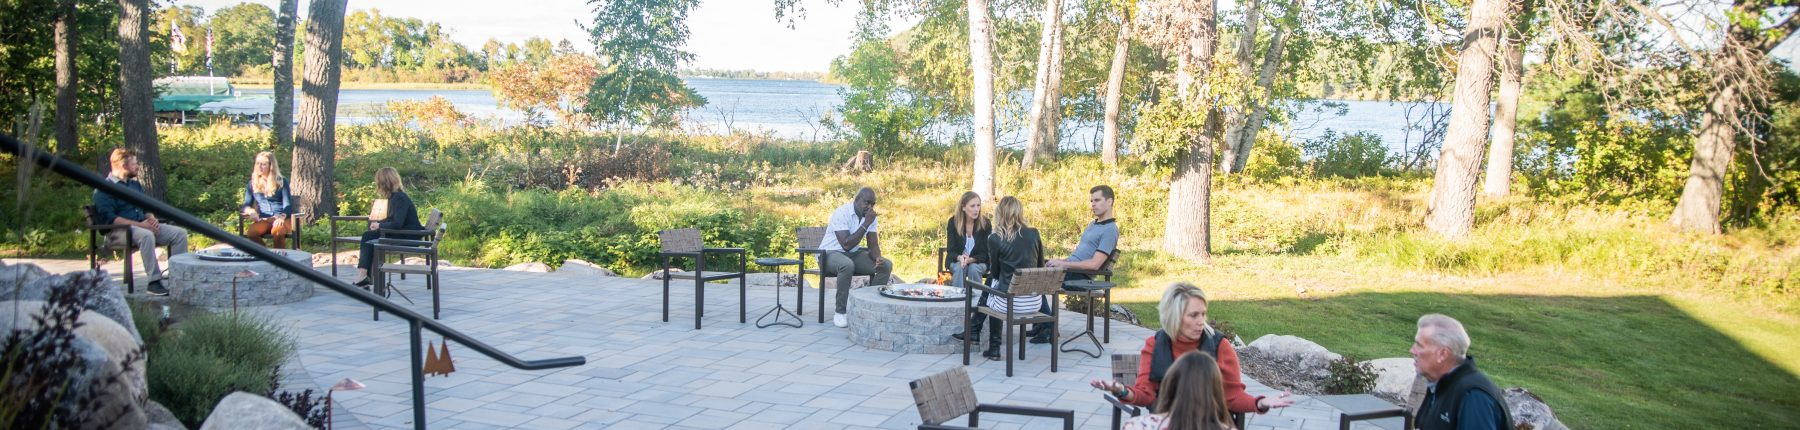 Guests sitting on the patio chairs next to the firepit at Madden's on Gull Lake.